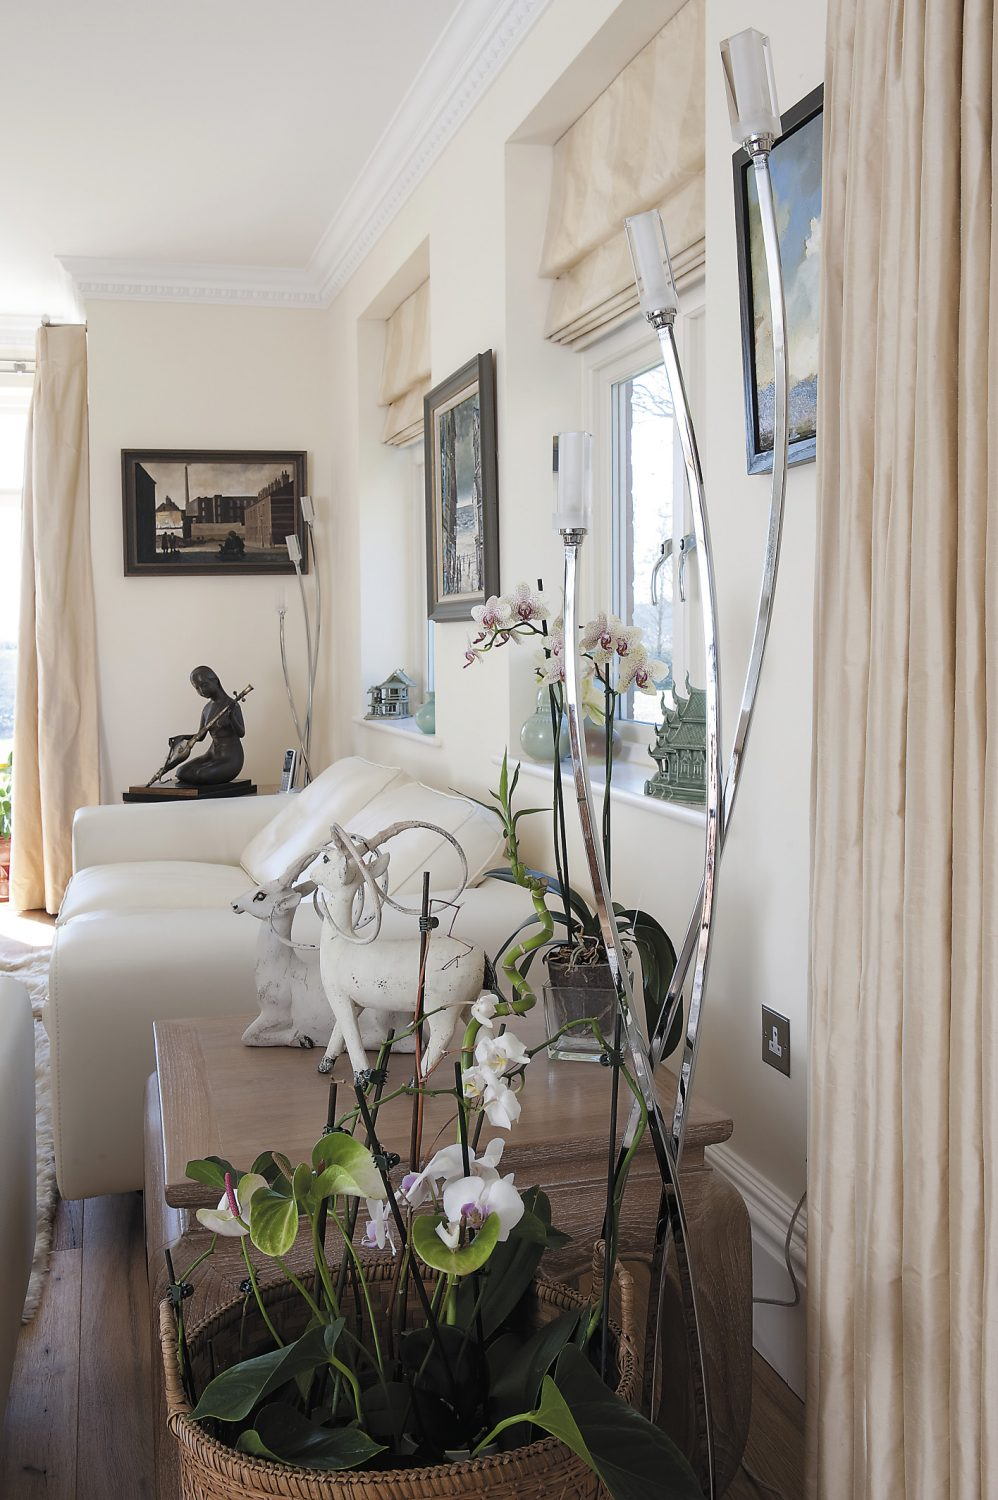 Mike and Jean's apartment has both a contemporary and exotic air and is filled with an assortment of objets d'art that the couple collected whilst living in Thailand